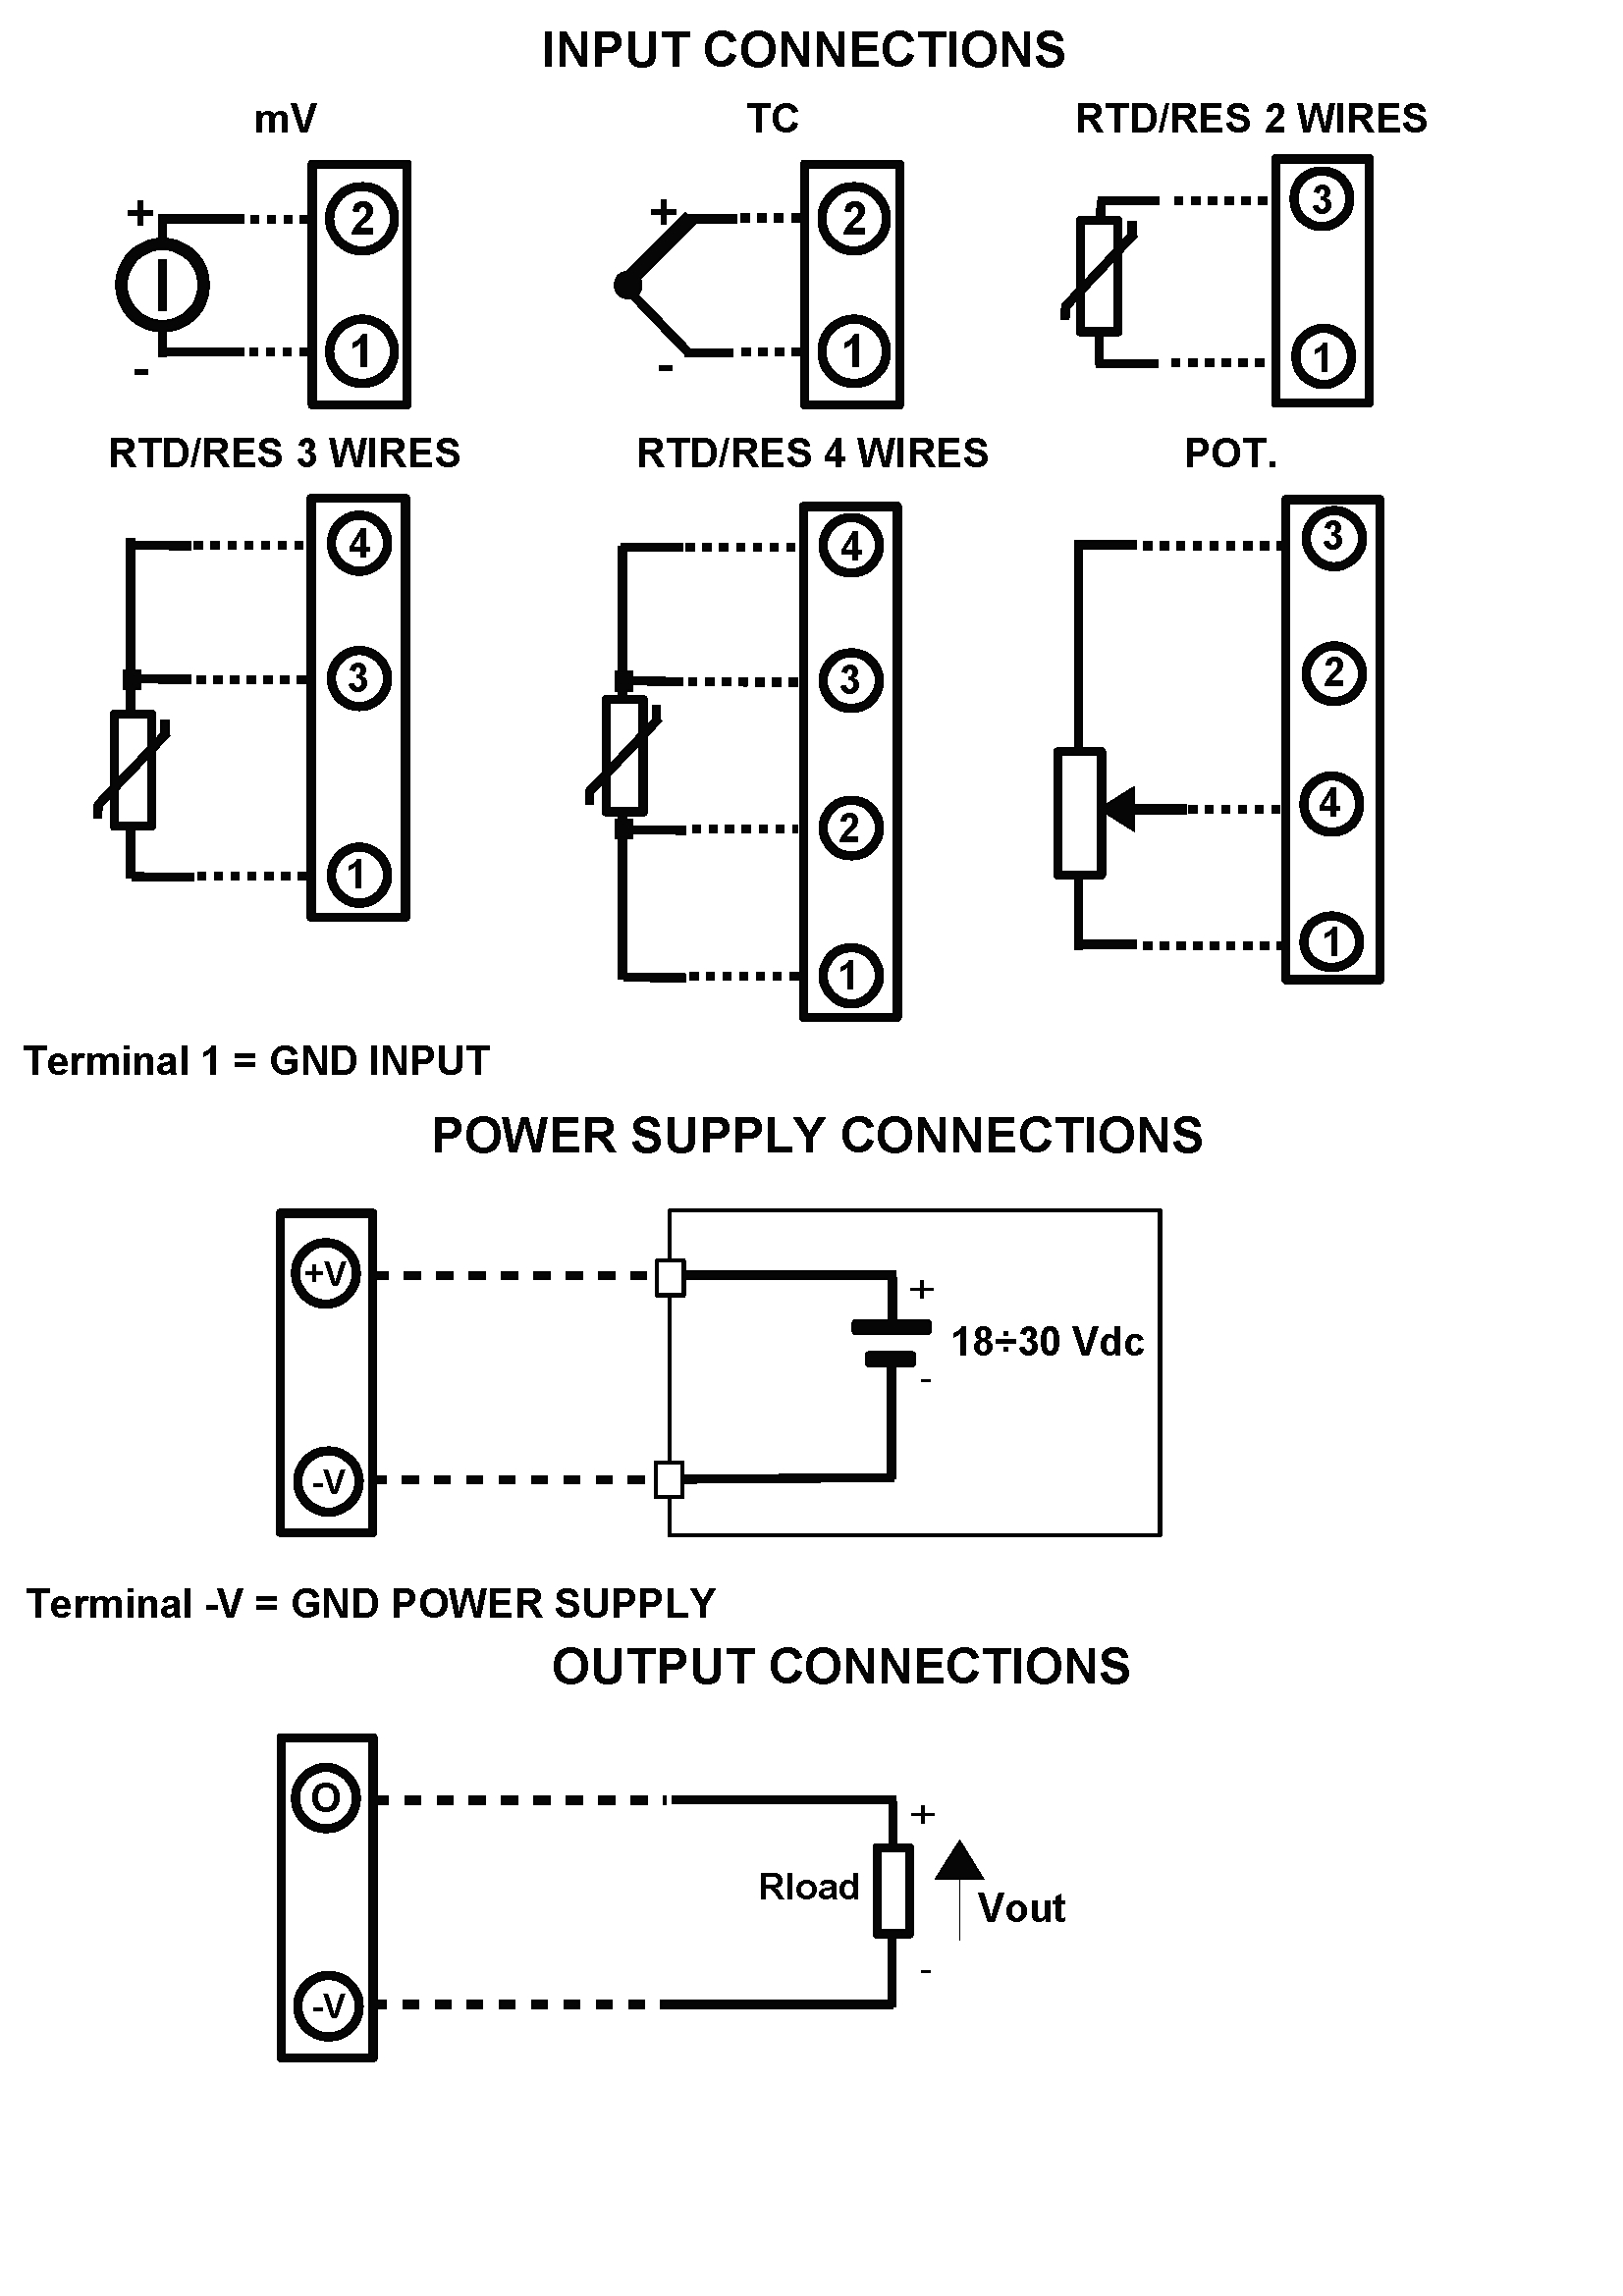 Omega Rtd 3 Wire Diagram - Wiring Diagram Schematic on 4 wire relay schematic, 4 wire 3 mohm rtd, 4 wire sensor diagram,